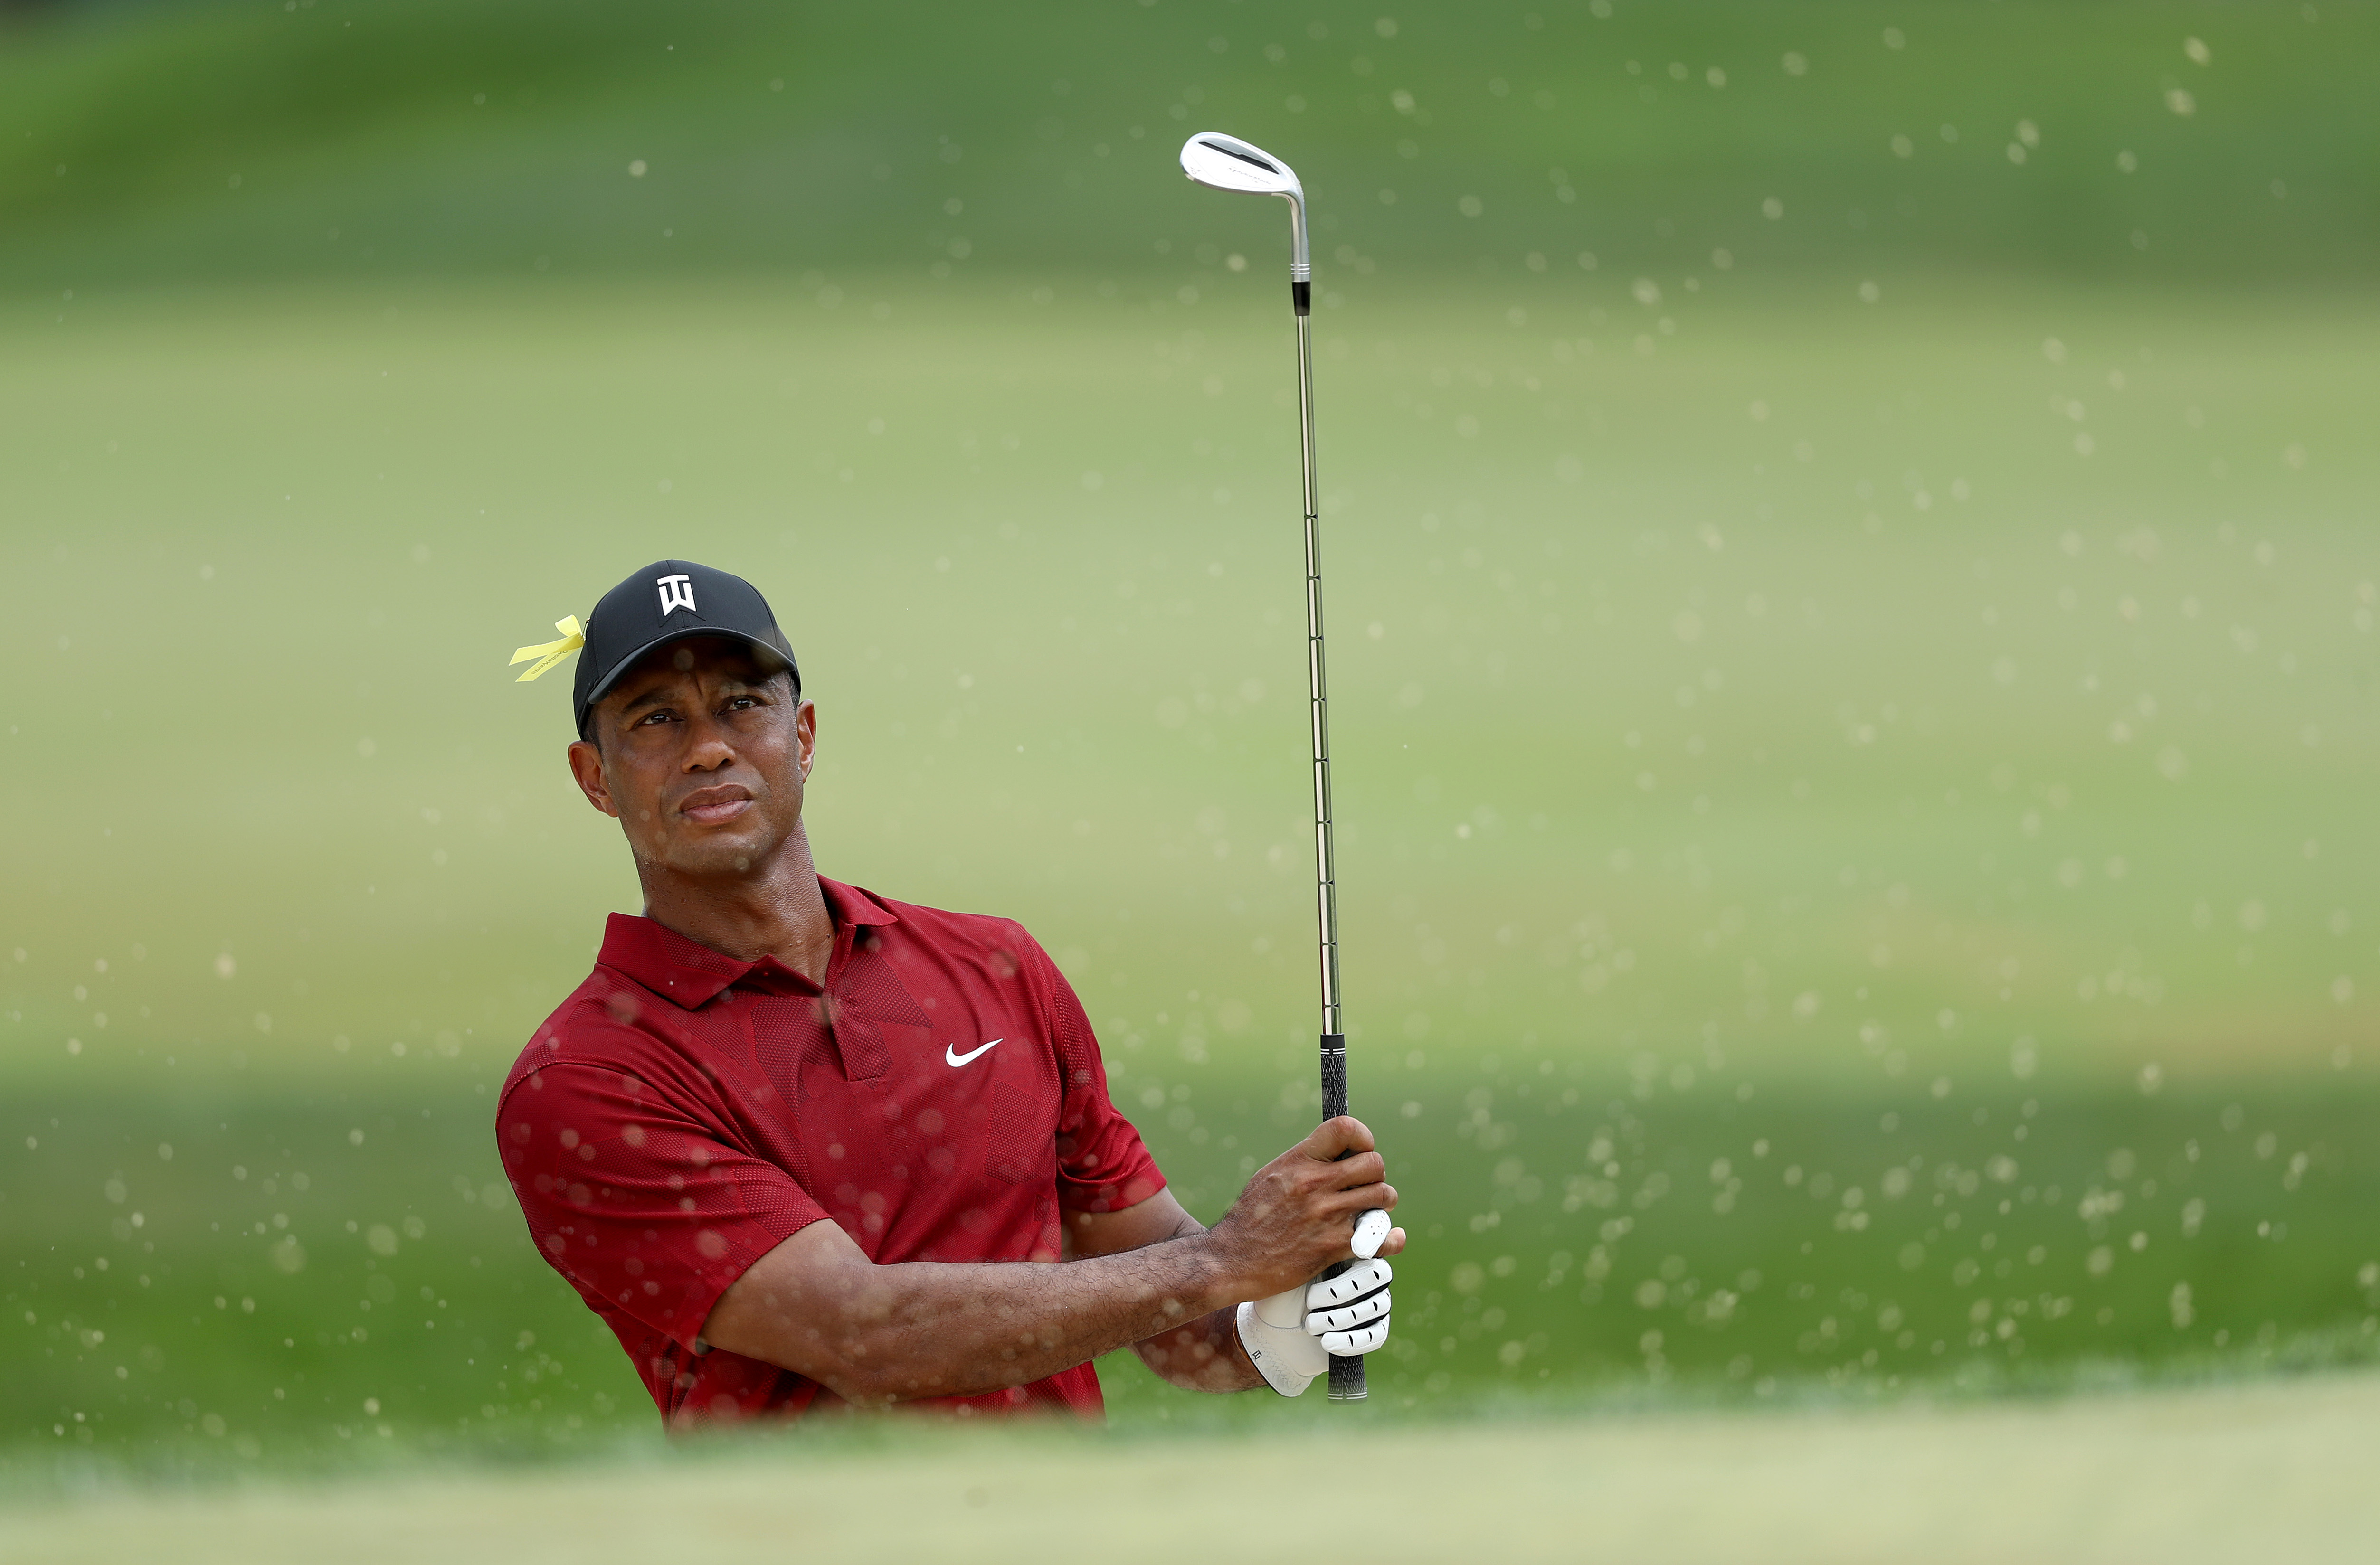 Tiger Woods confident of adding to major tally at PGA Championship